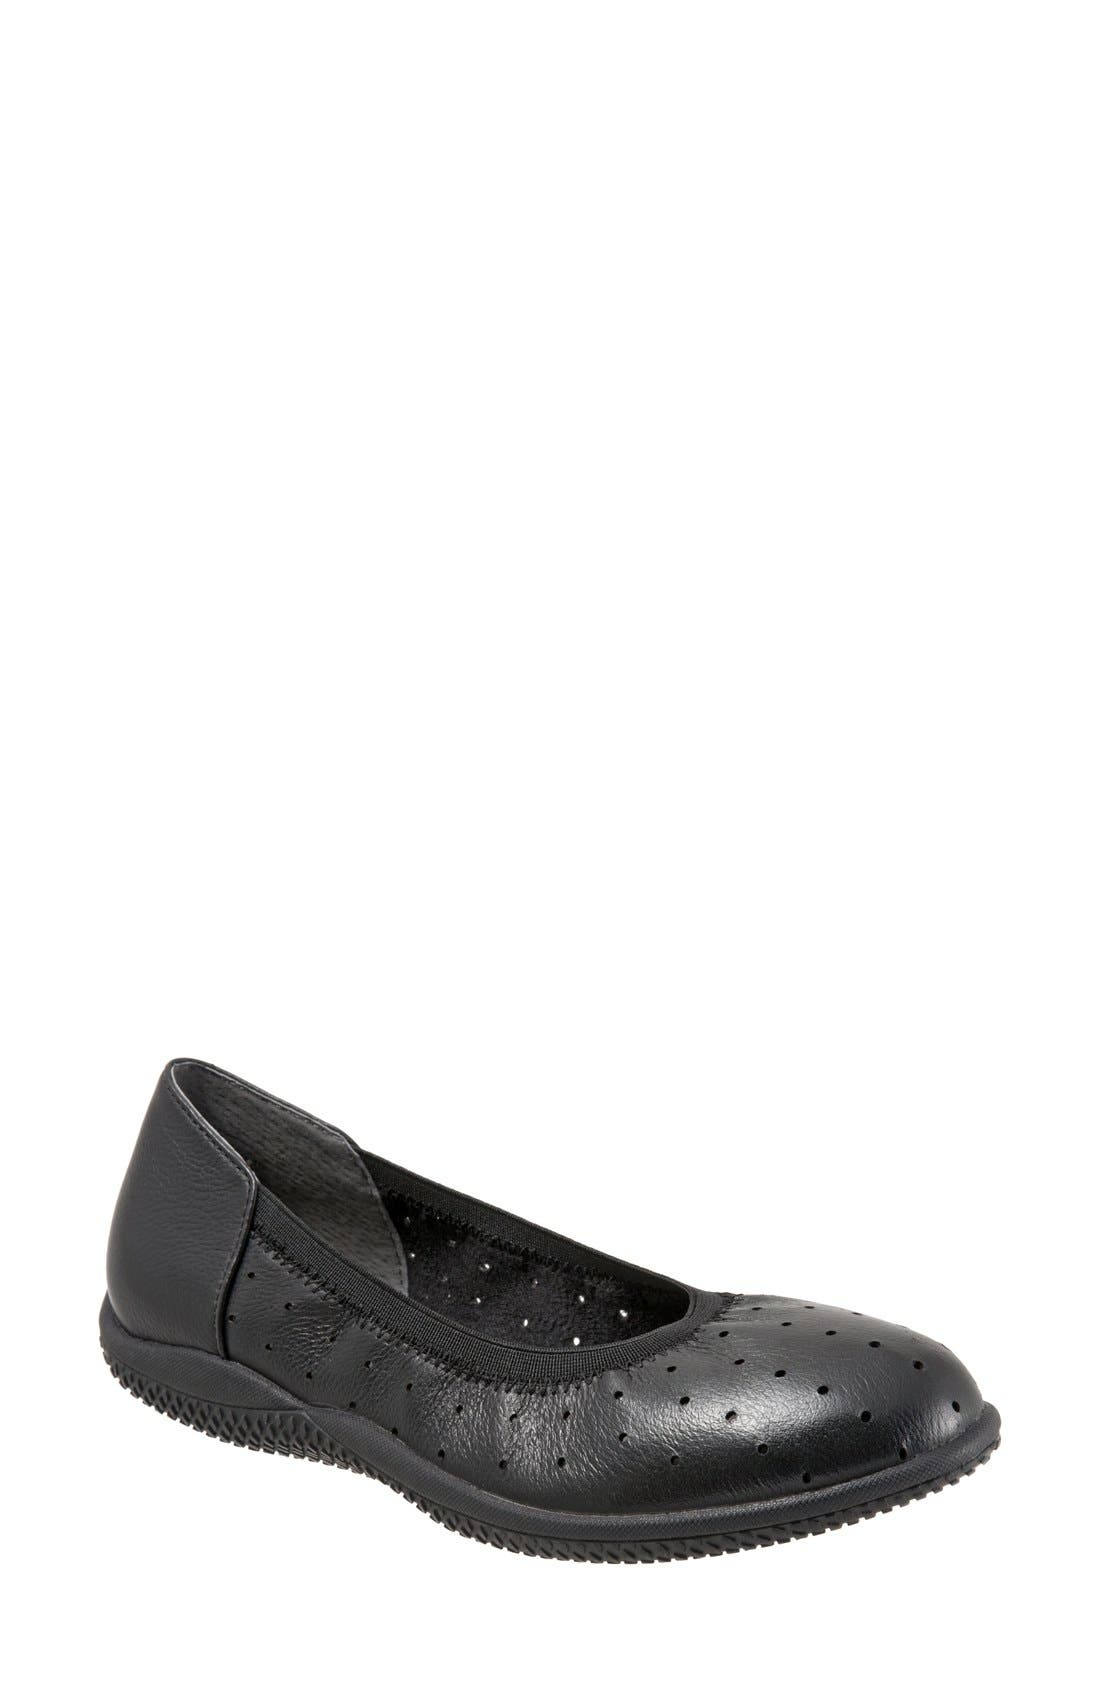 'Hampshire' Dot Perforated Ballet Flat,                             Main thumbnail 1, color,                             BLACK LEATHER